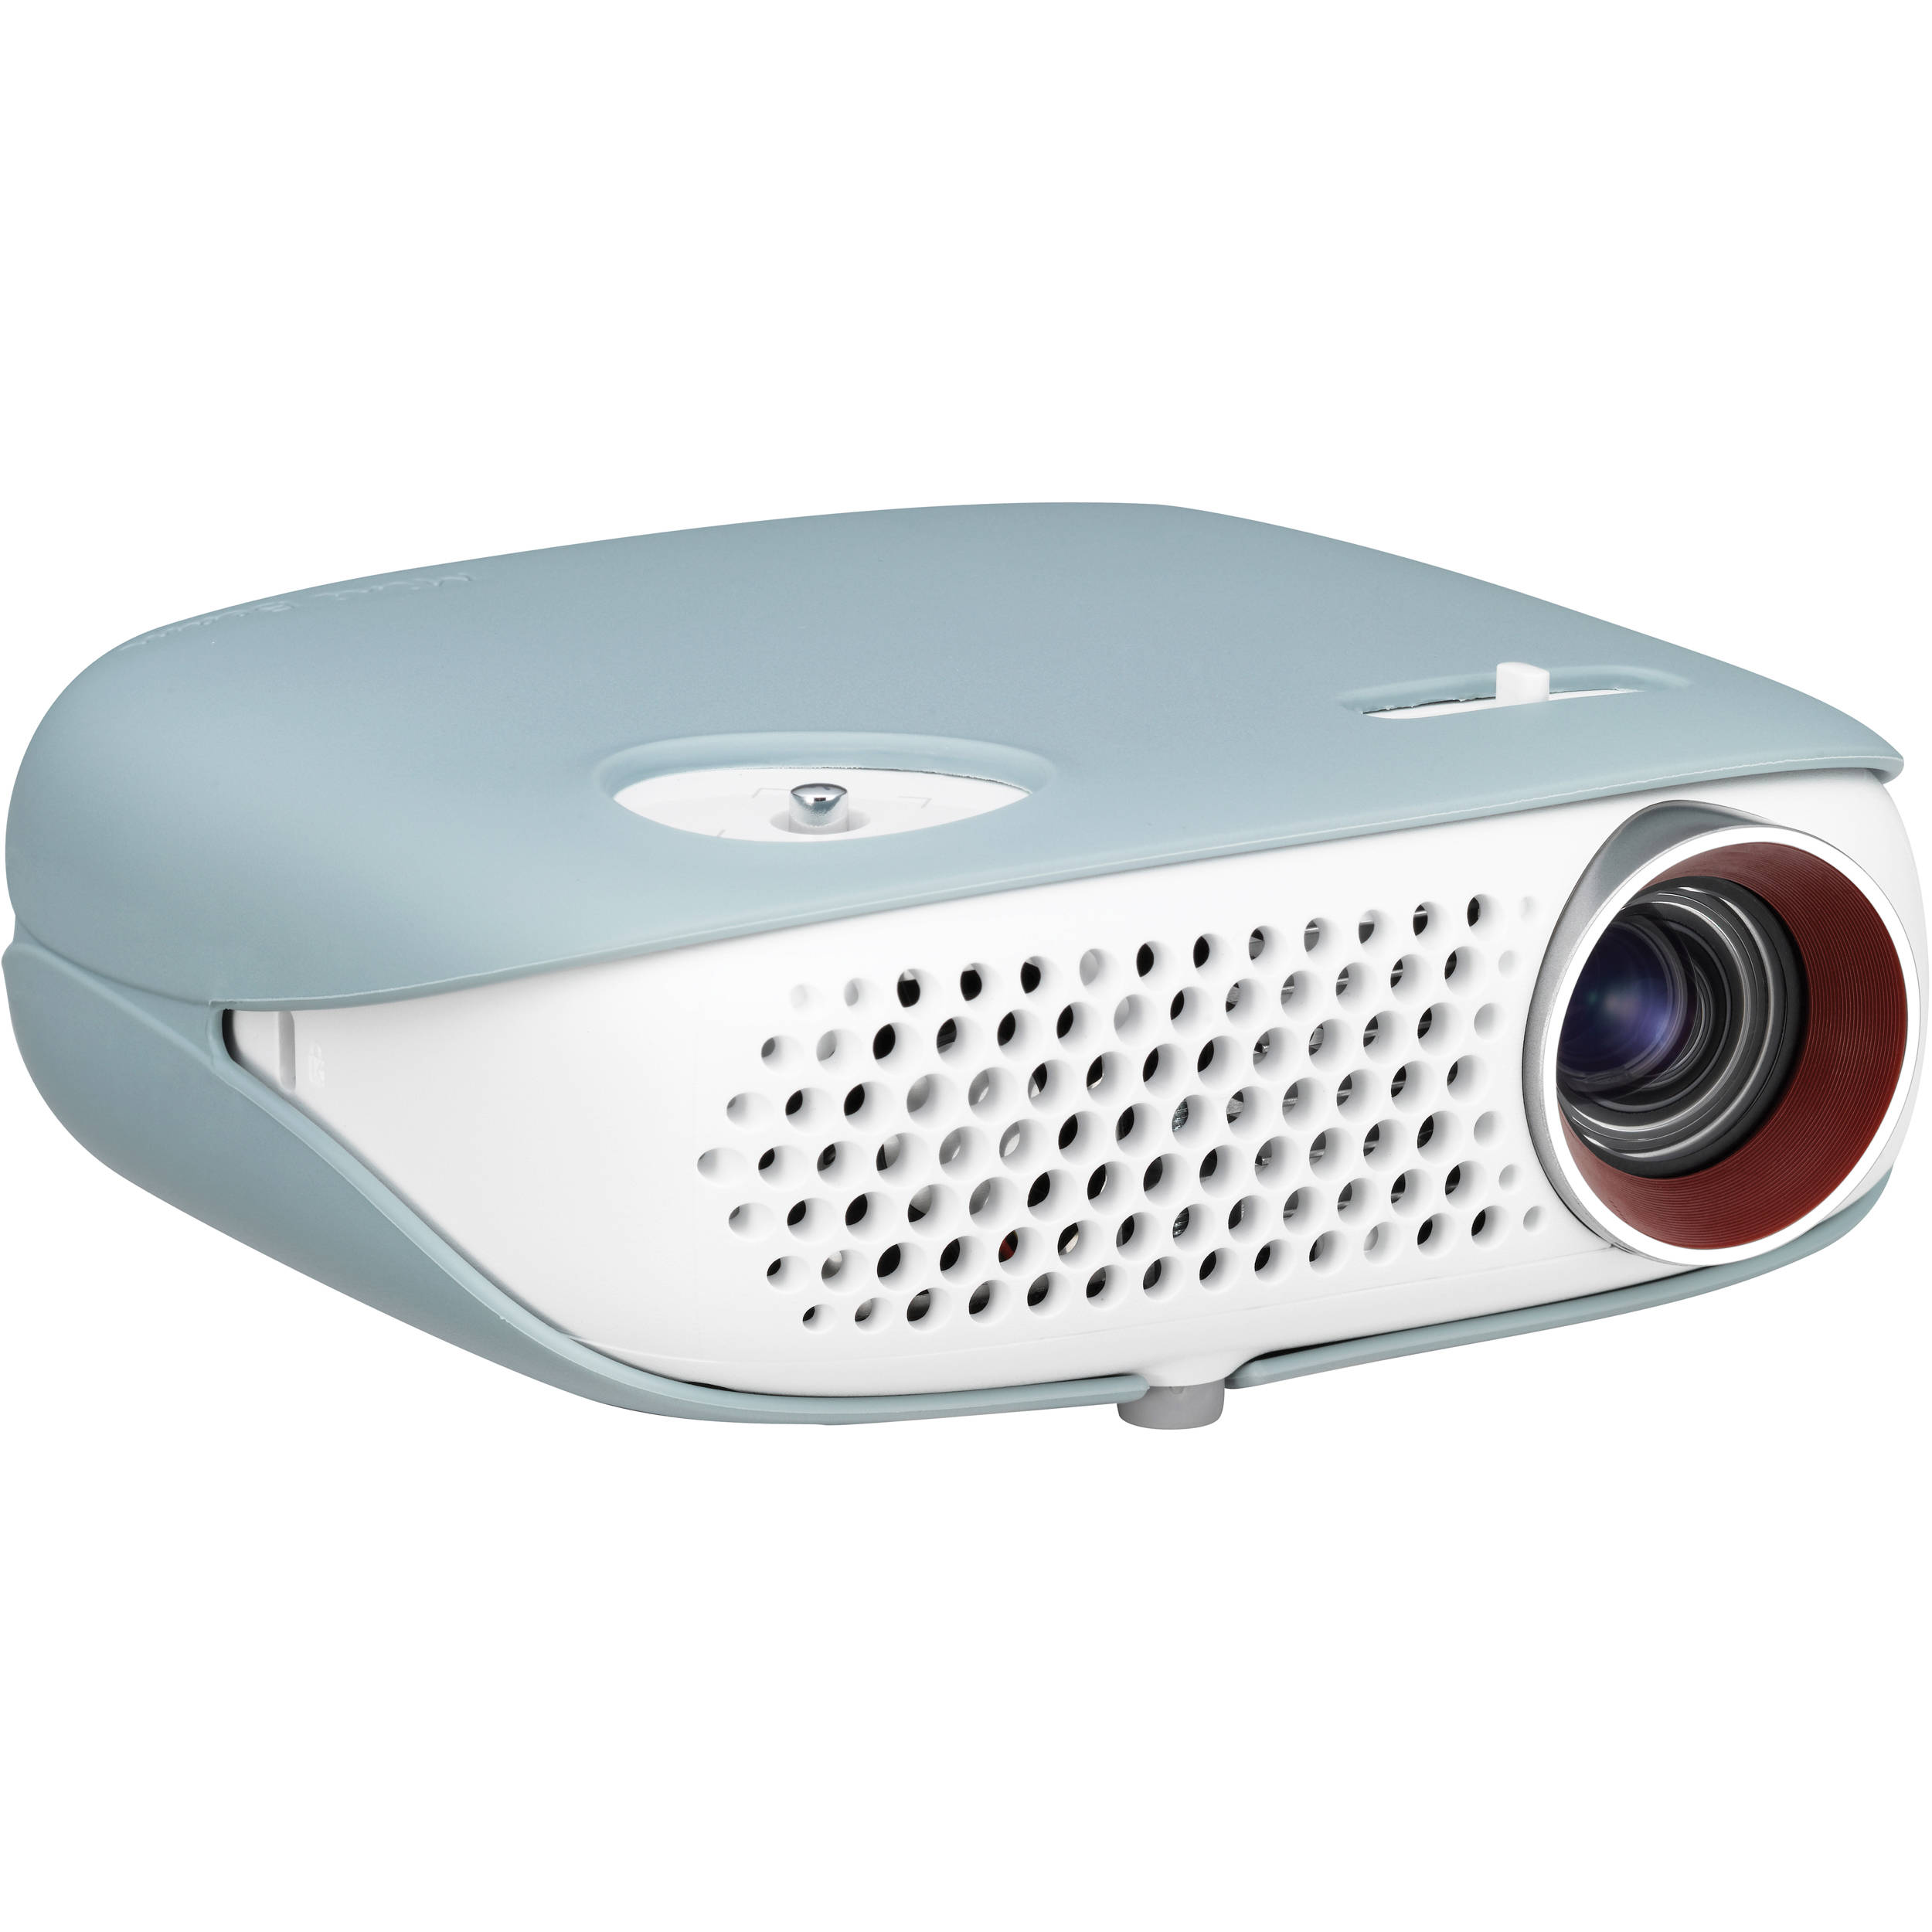 Lg pw800 portable hd led projector pw800 b h photo video for Hd projector